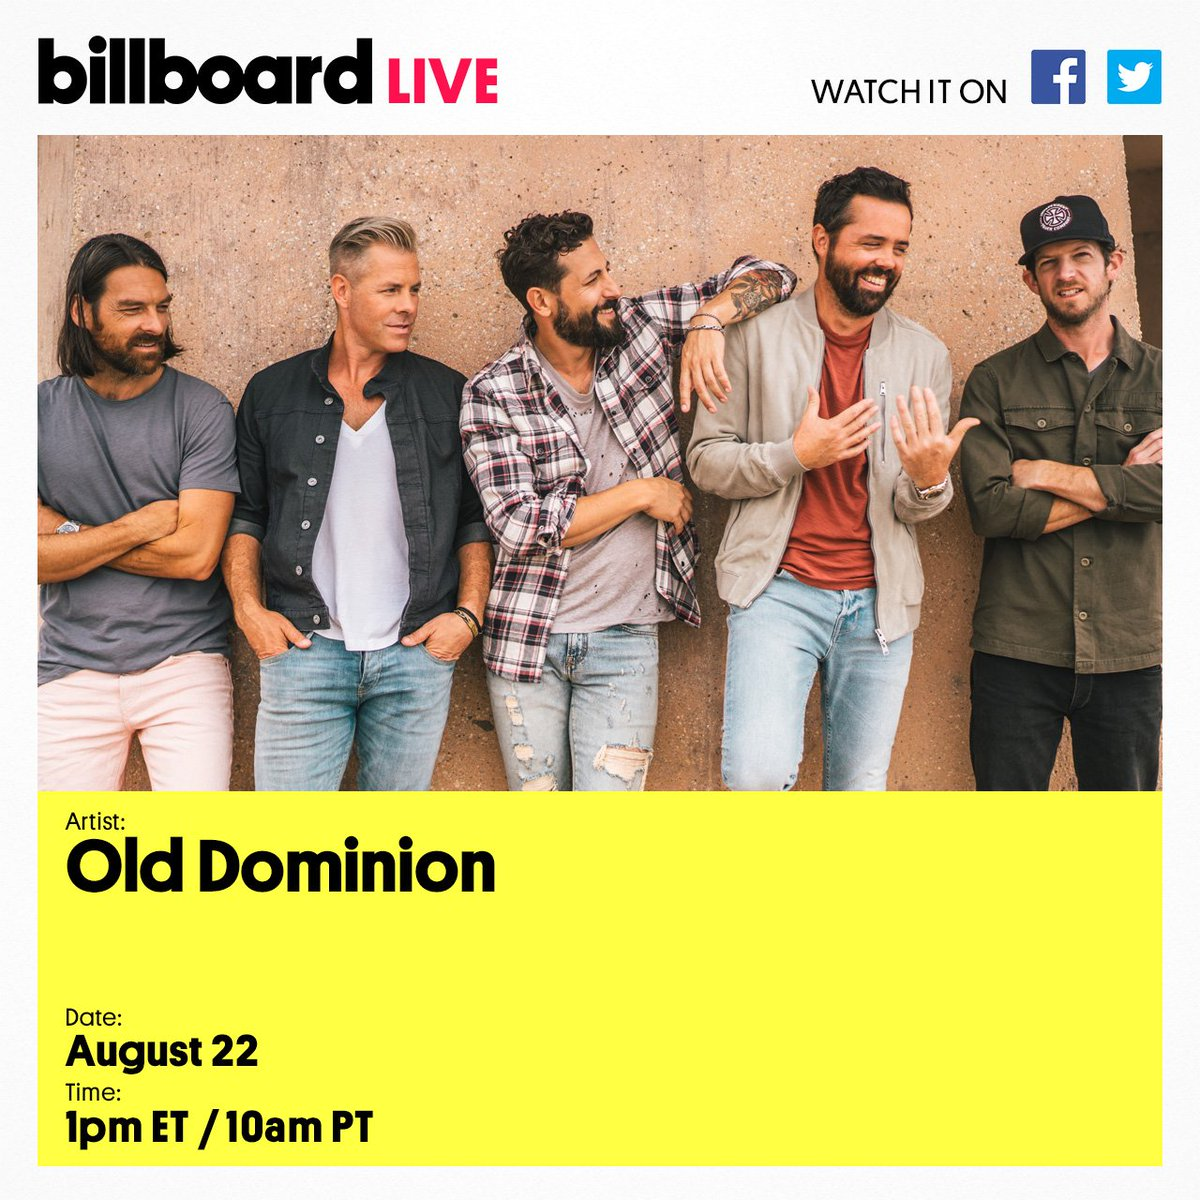 .@OldDominion is stopping by for a performance and Q&A on Billboard Live! Submit your questions using #BillboardLive and we might ask them on air. <br>http://pic.twitter.com/71HpXDrwB9